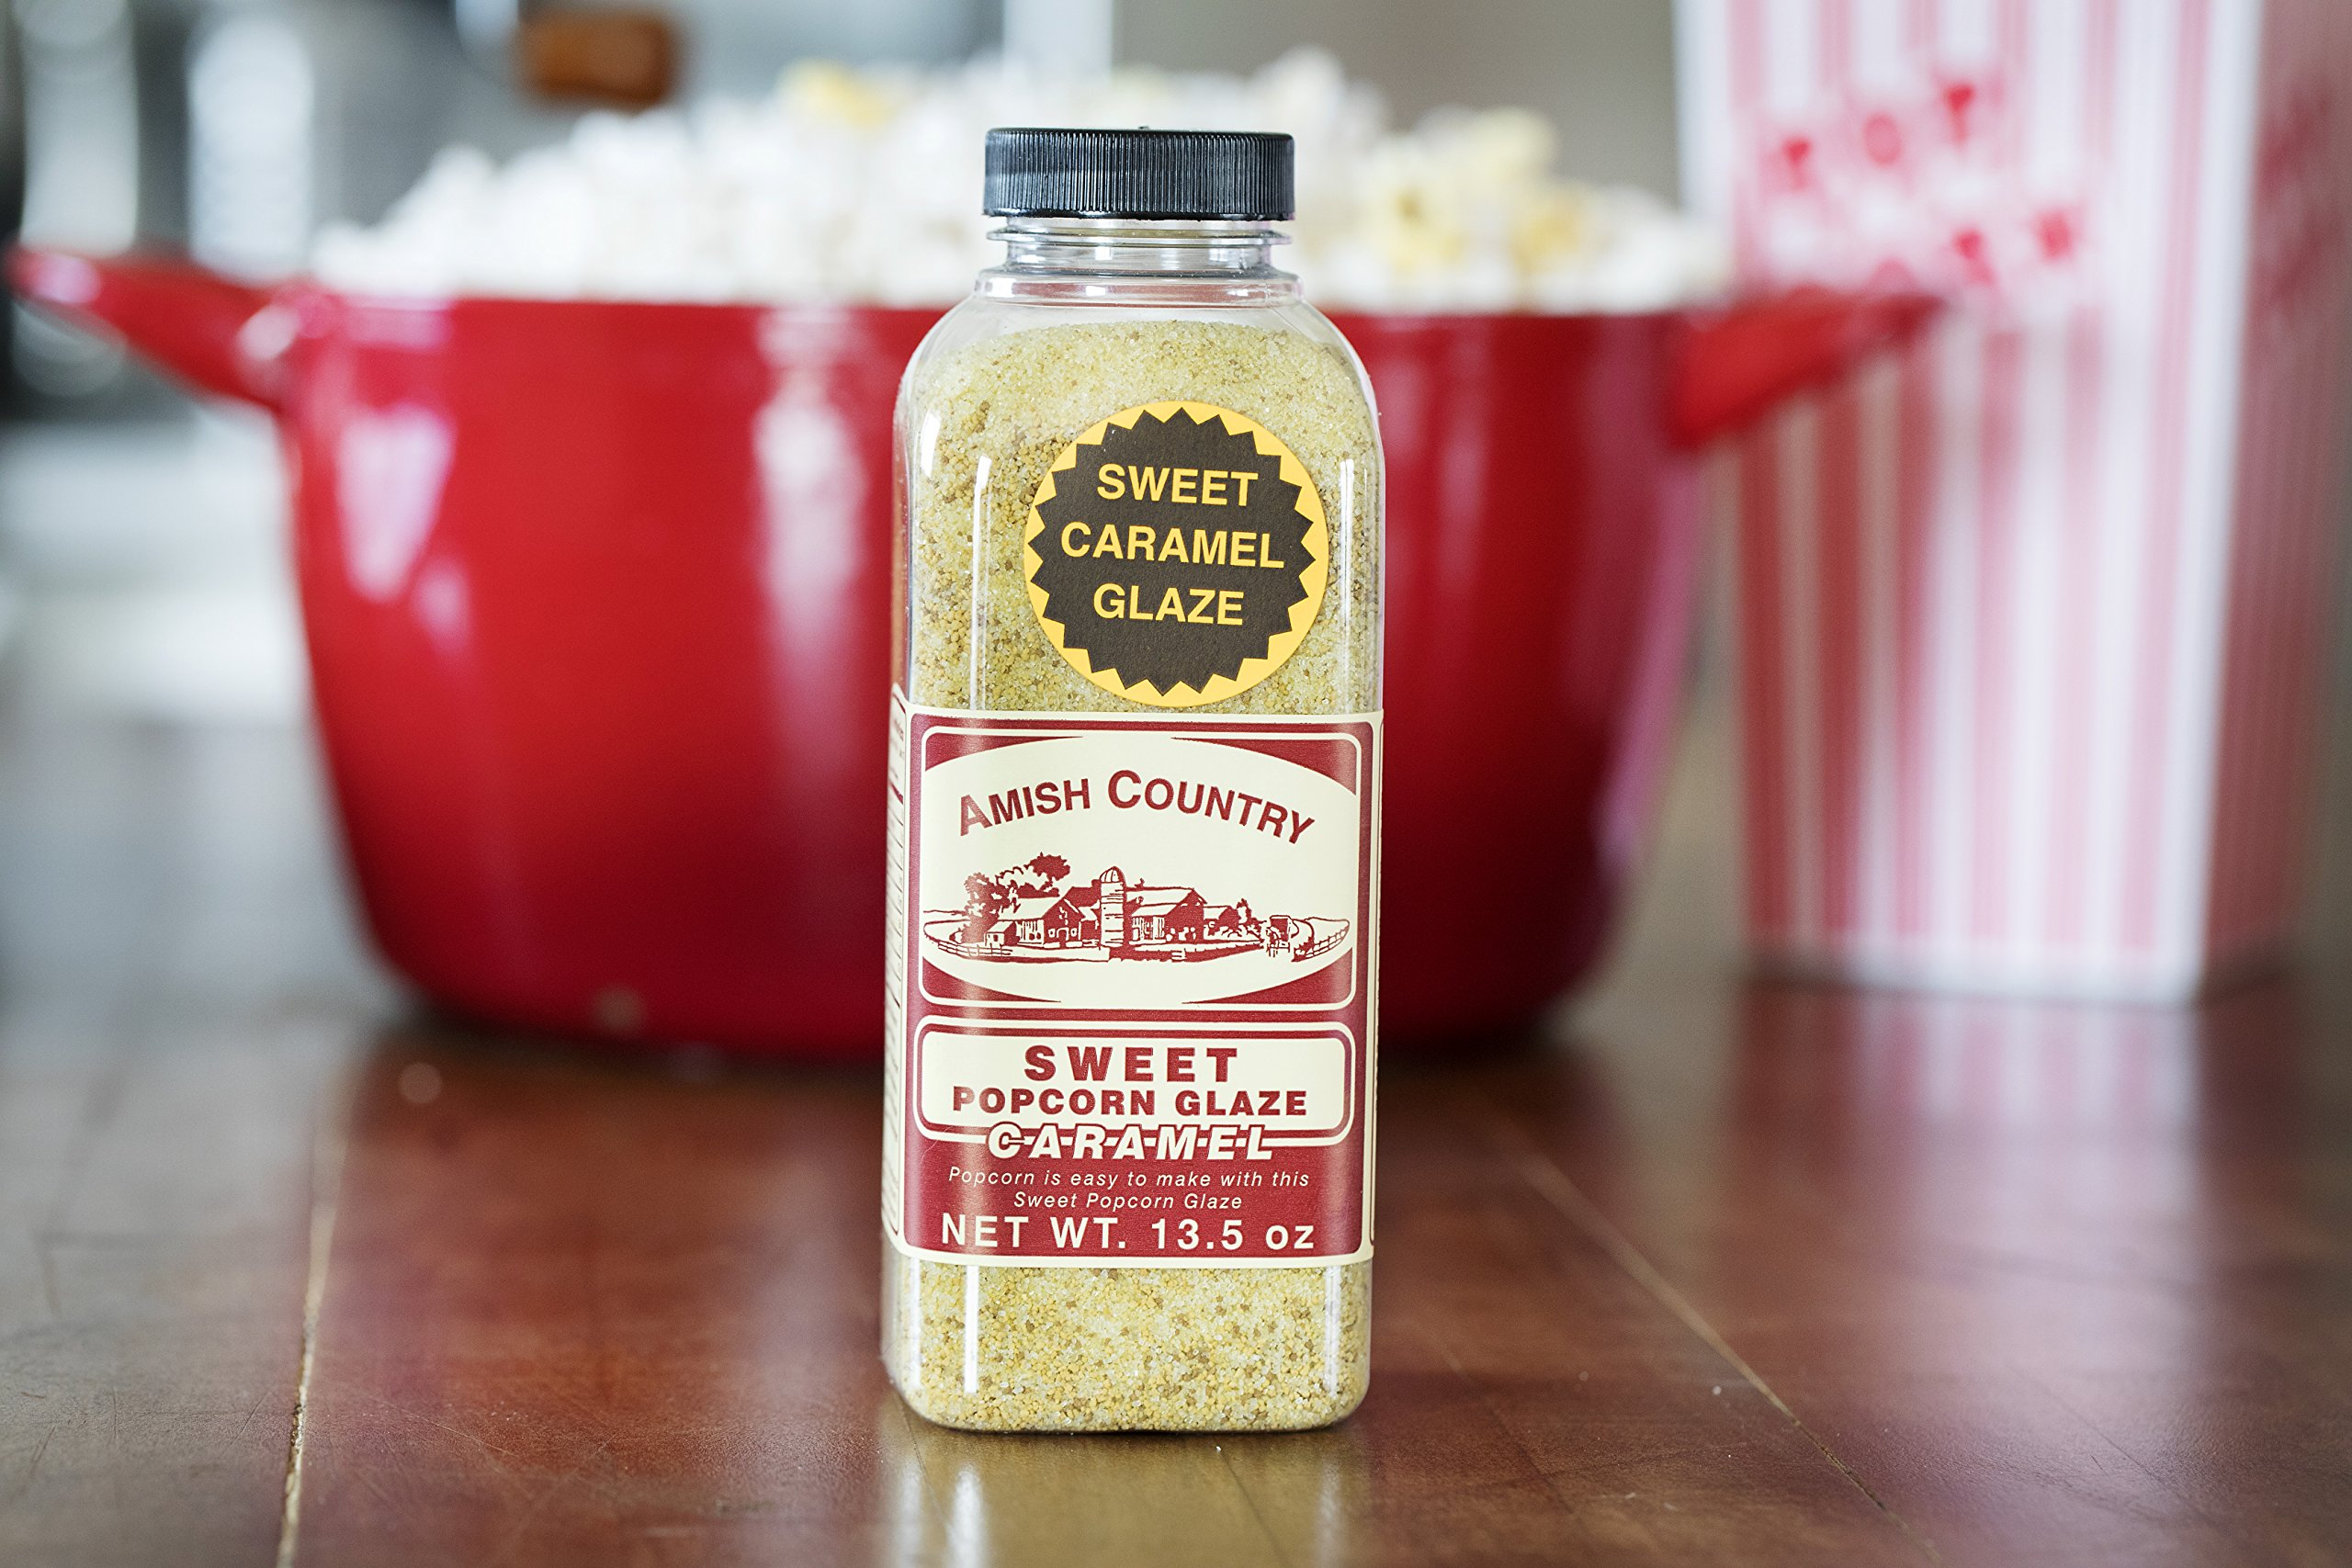 Amish Country Popcorn - Sweet Caramel Glaze - 13.5 oz - Great Tasting and Old Fashioned Sweet Treat - with Recipe Guide and 1 Year Freshness Guarantee by Amish Country Popcorn (Image #4)